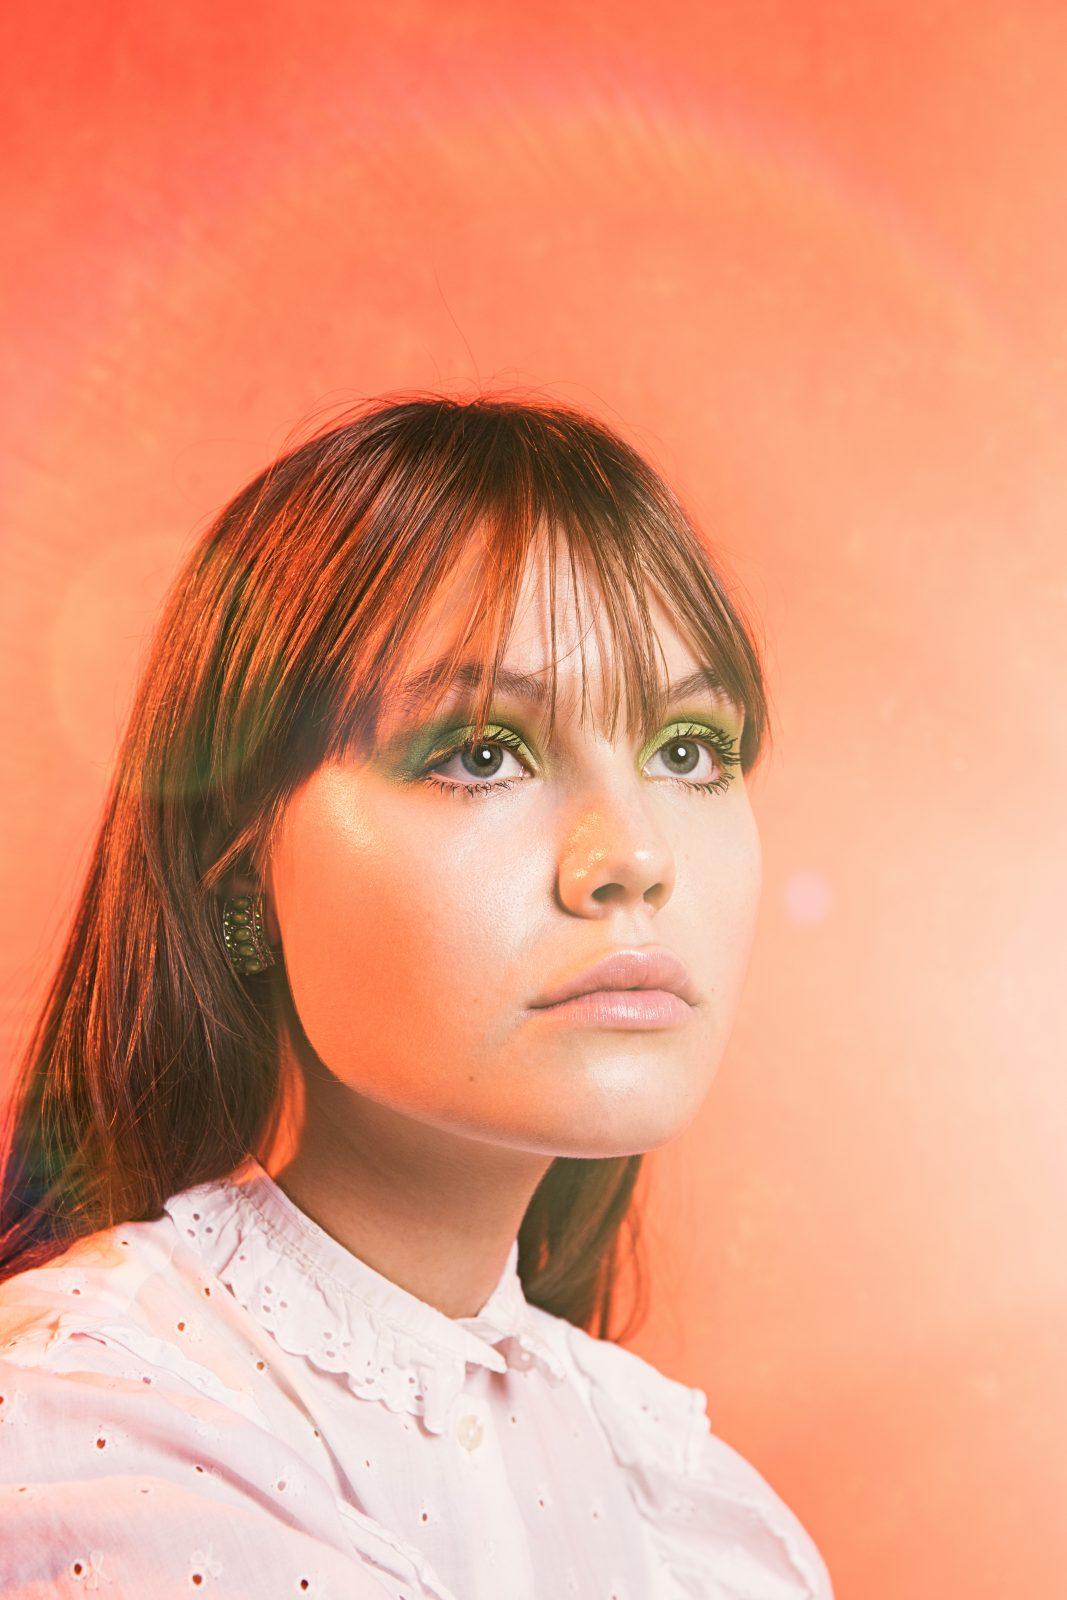 Woman with long her and white button shirt and green eye make up in front of light orange background. It is singer Lxandra.